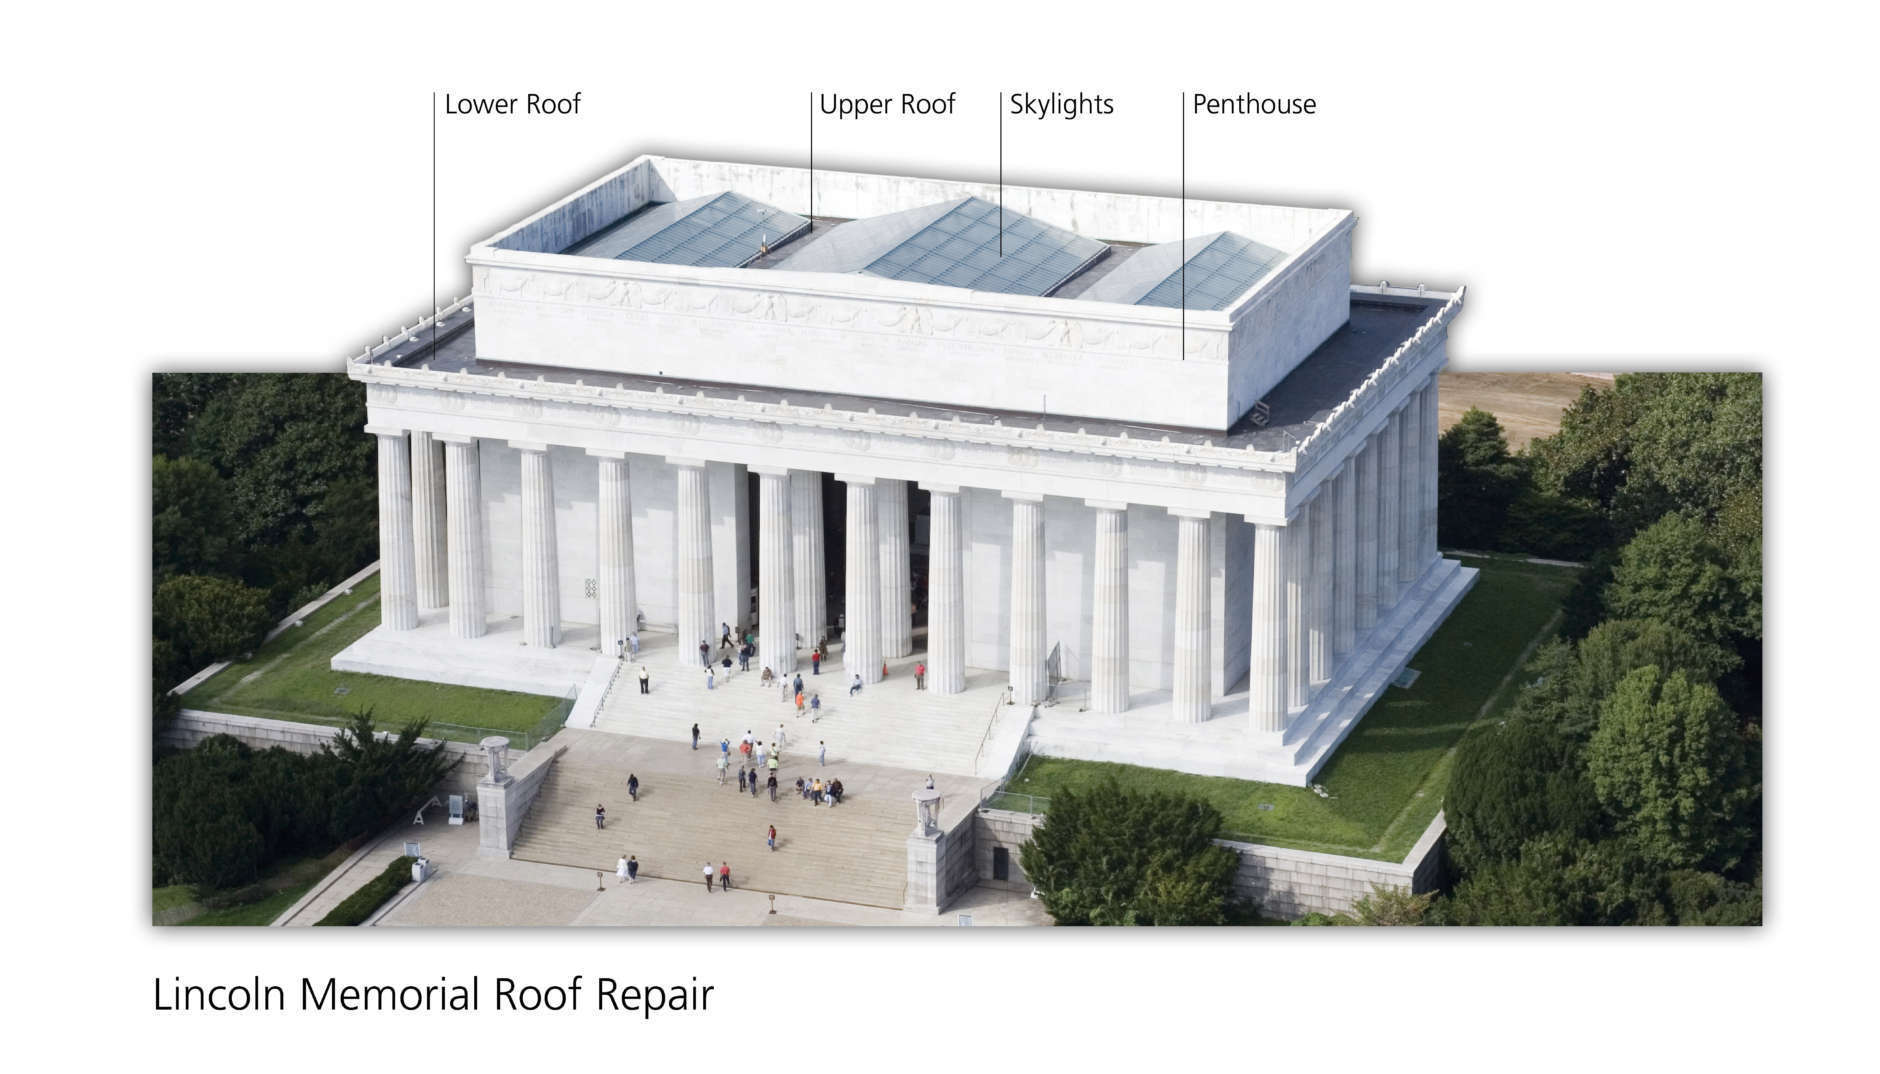 This diagram provided by the National Park Service shows the areas that will be repaired as part of a $2.85 million project that began on Monday. Last replaced 20 years ago, the flat upper and lower roofs of the memorial are failing, allowing water to stain the interior walls of the structure. A five-layer roof system will be installed but will not alter the look of the structure: hollow clay terracotta tile, concrete decking, a hot rubberized asphalt membrane, rigid insulation and slate pavers. Marble at the four corners of the penthouse level will also be repaired. And broken glass in the skylights above the chamber will be replaced. (Courtesy National Park Service)